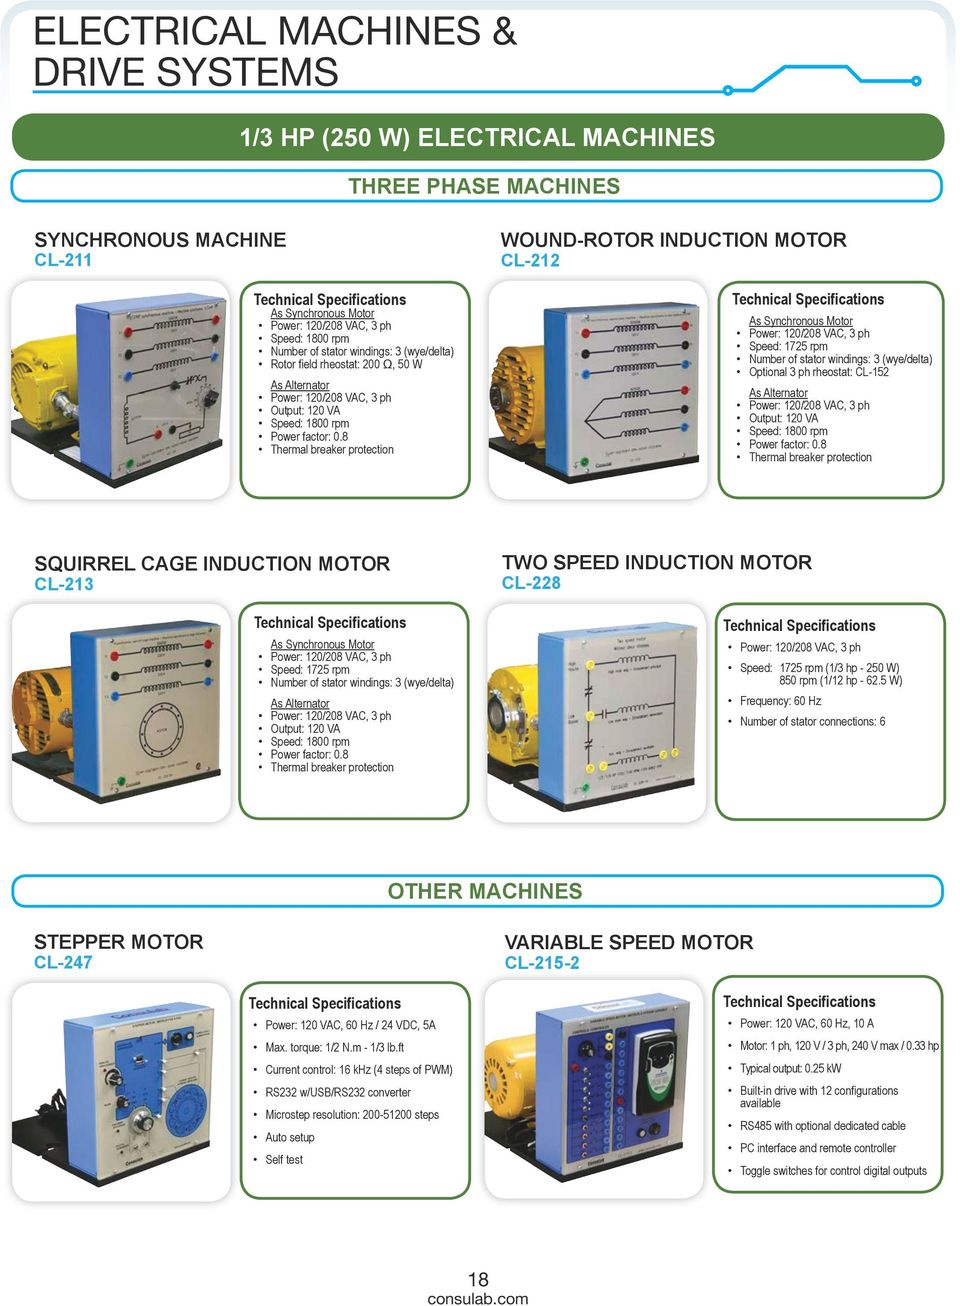 Catalog Electrical Engineering Technology Pdf Control Panel Design Basics O Oem Panels 8 Thermal Breaker Protection Wound Rotor Induction Motor Cl 212 As Synchronous Power